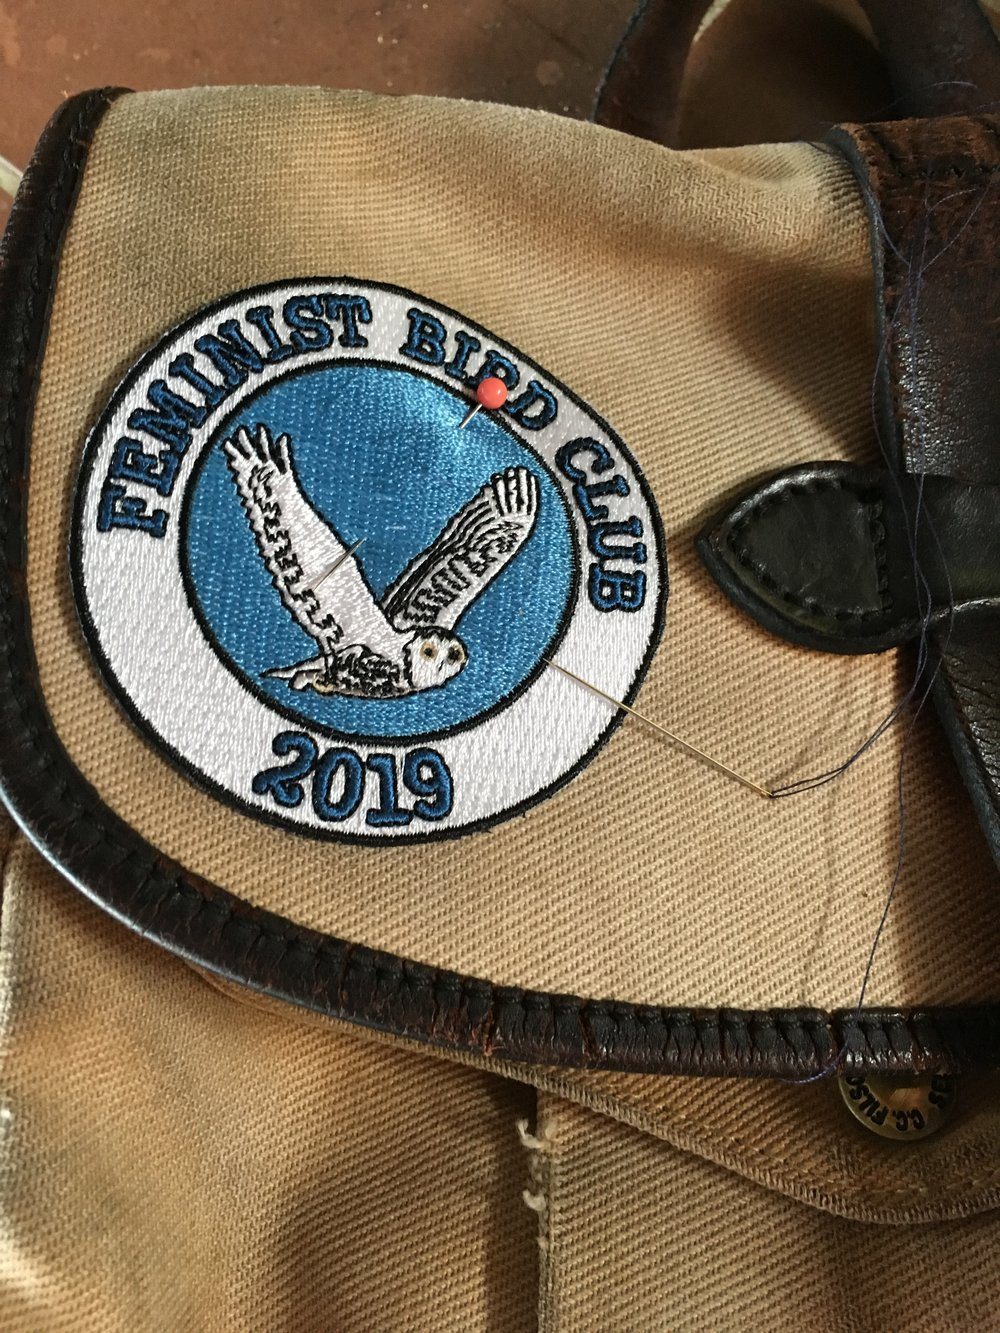 Sewing this year's Feminist Bird Club patch on my birding field bag.